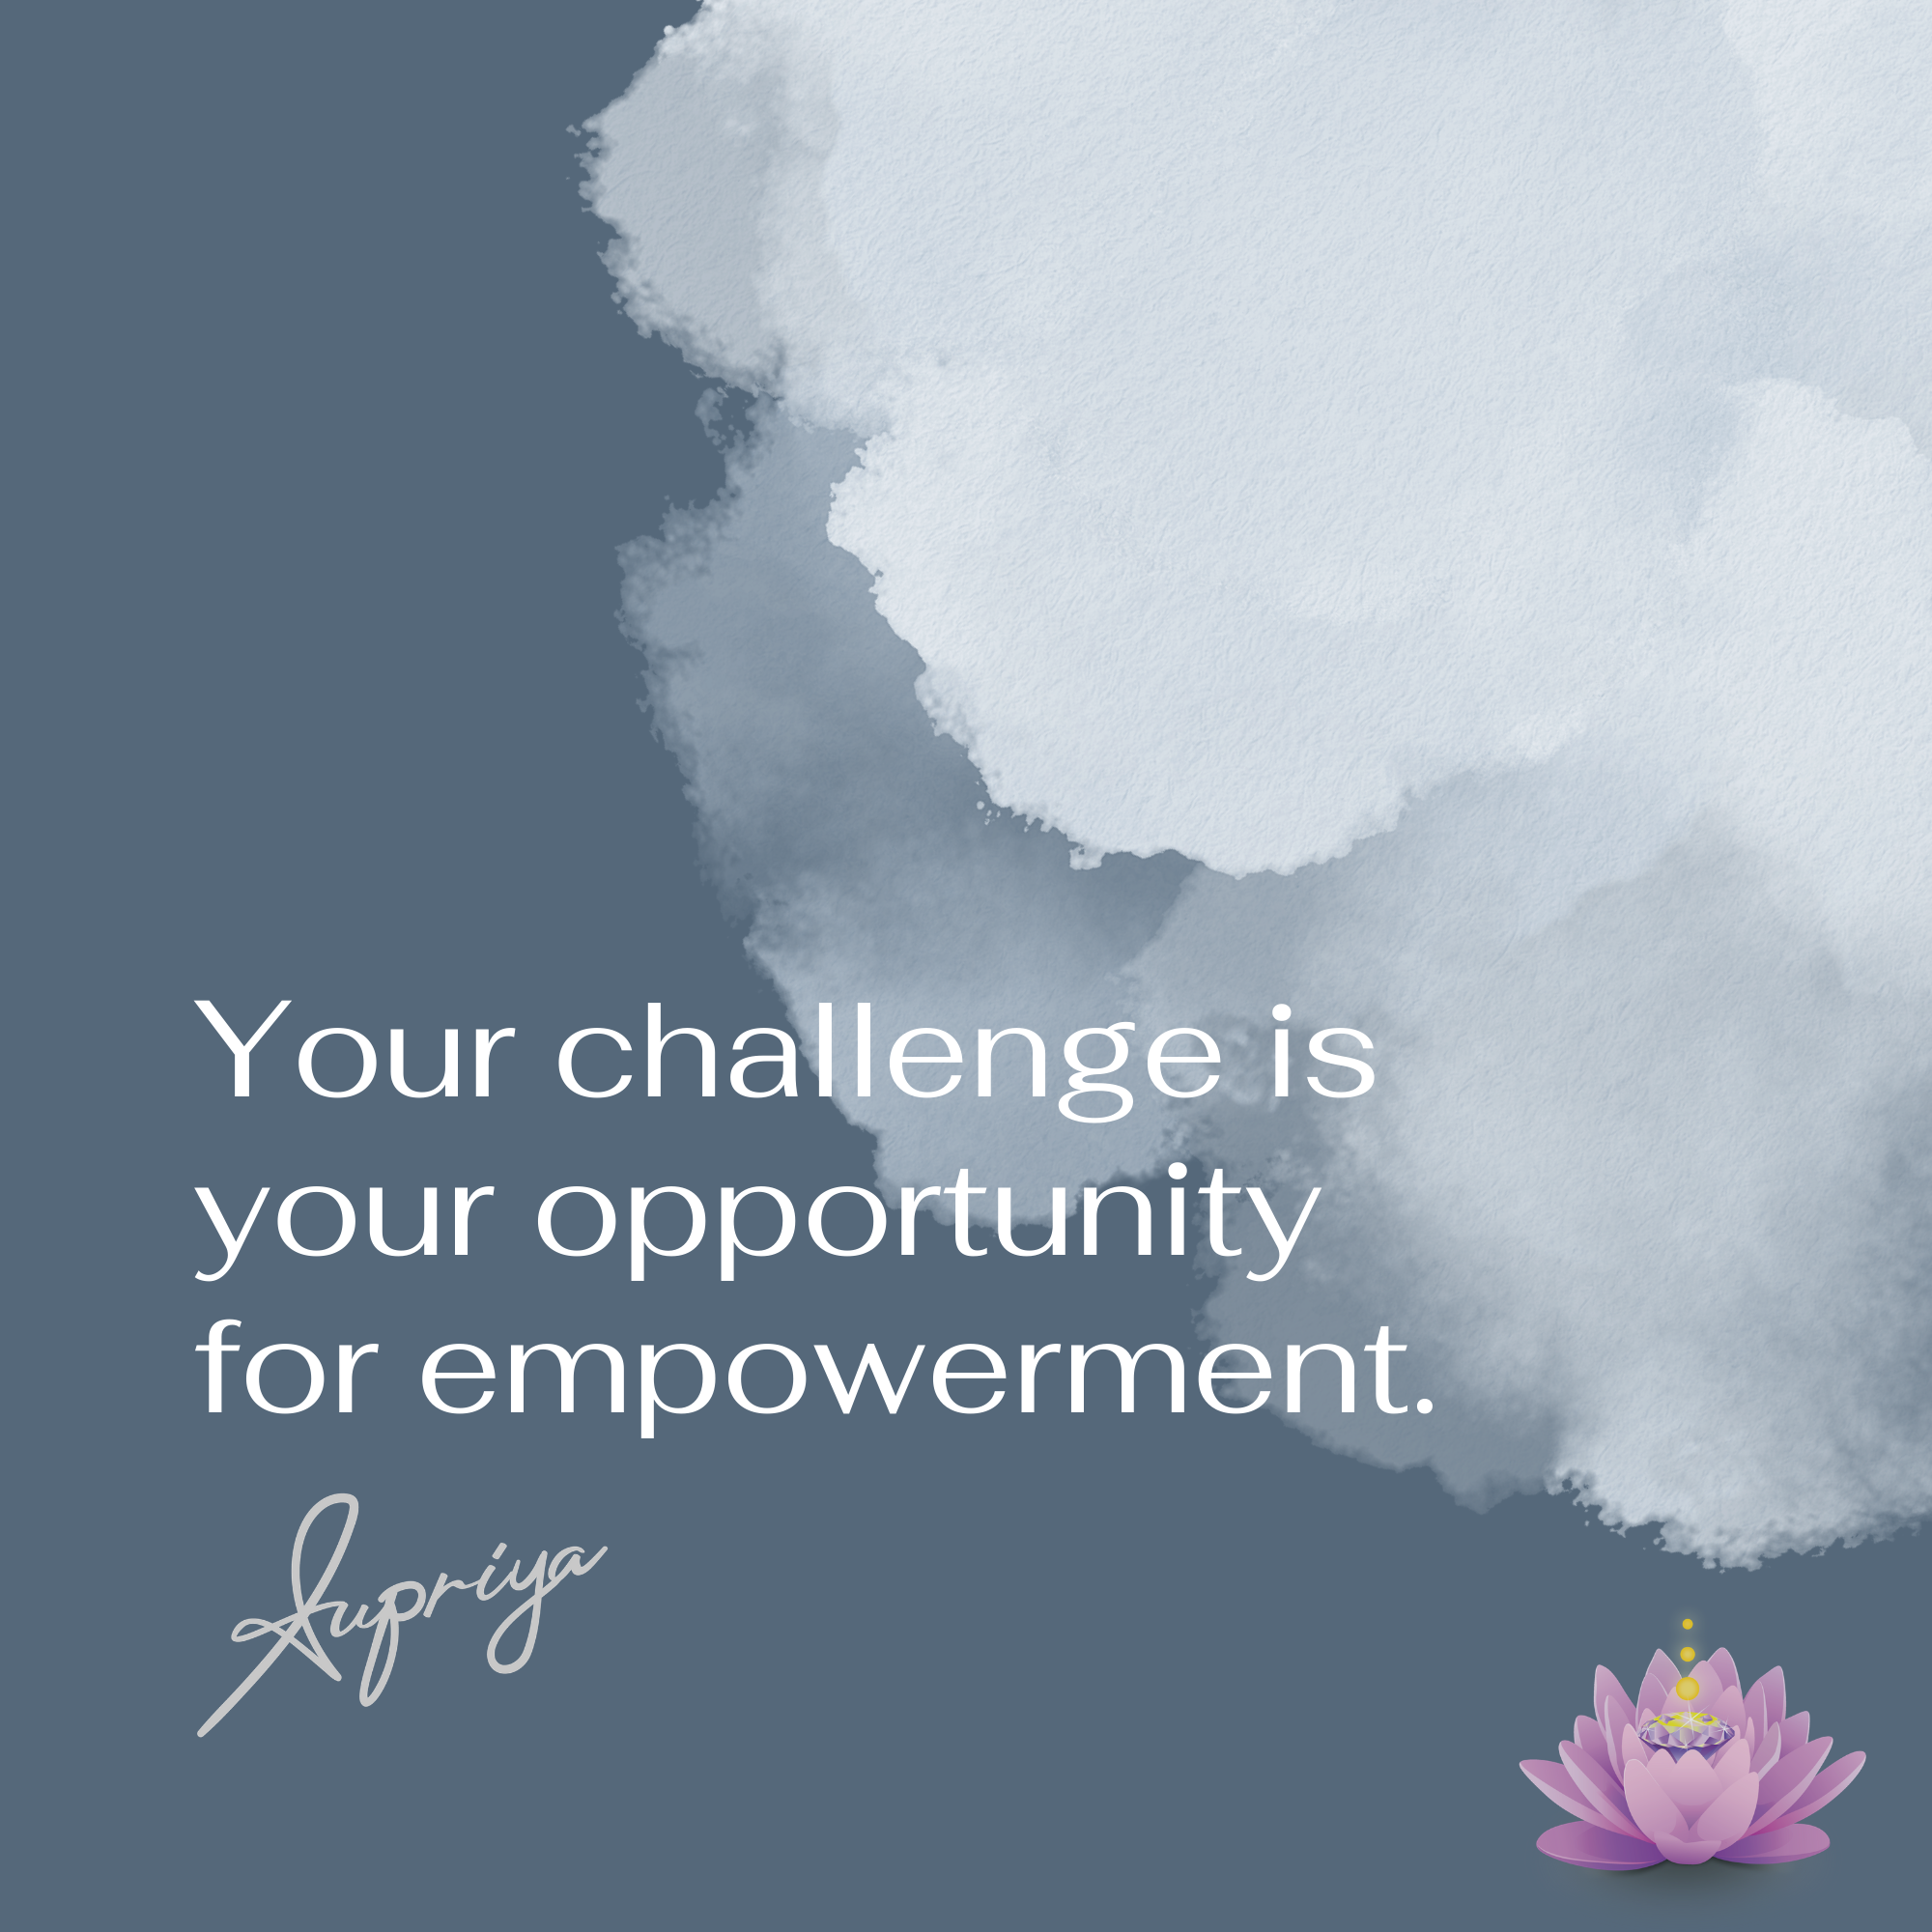 Your challenge is your opportunity for empowerment